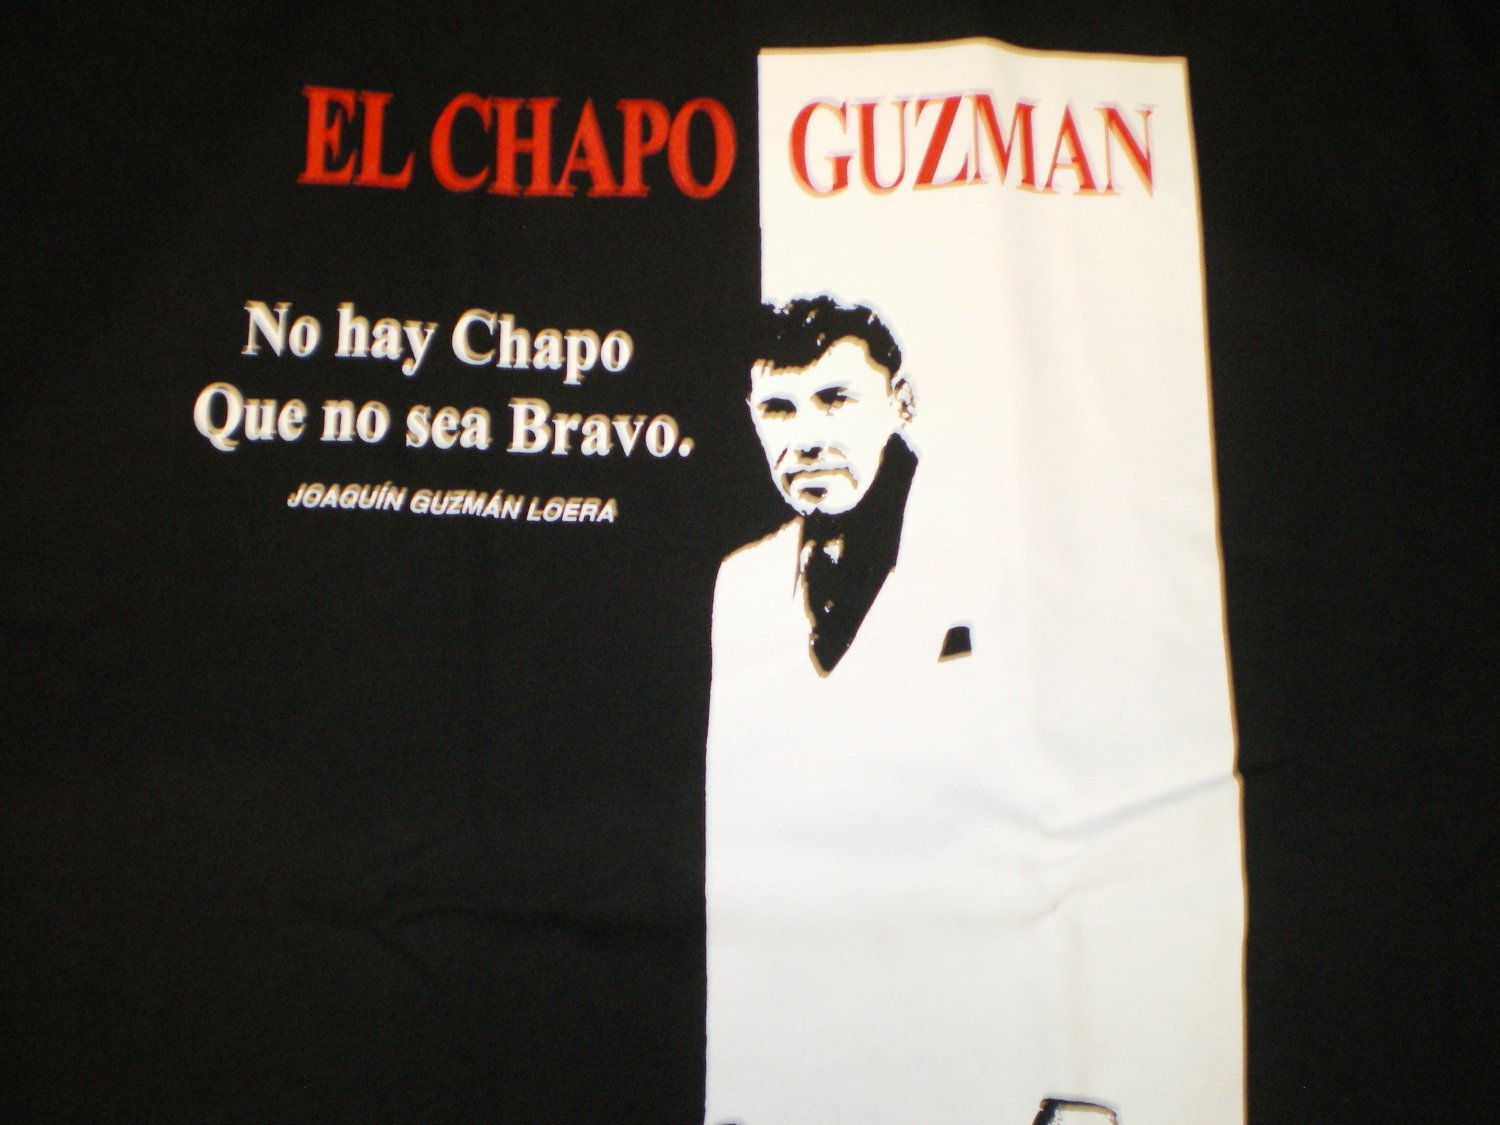 El Chapo Guzman T-shirt Blk/Red New!